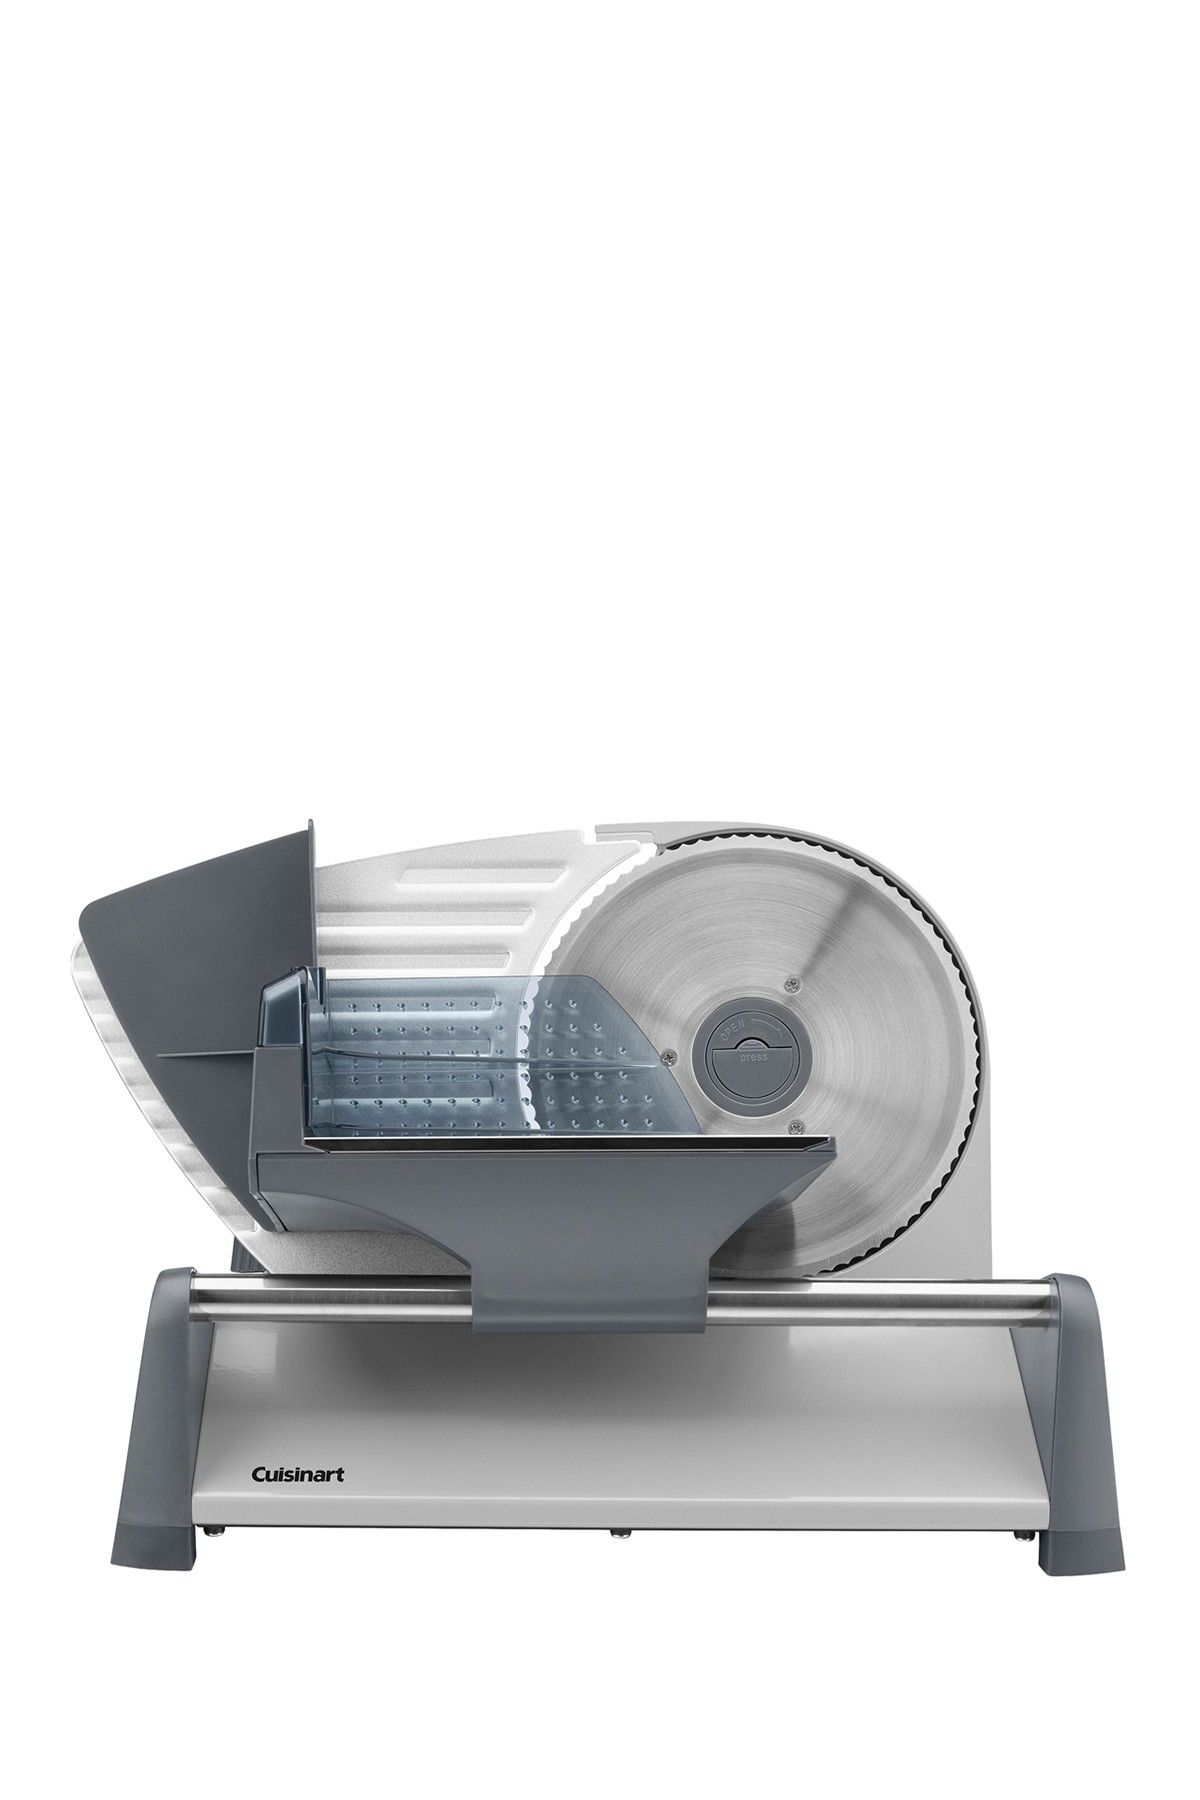 Cuisinart Kitchen Pro Food Slicer | Home Decoration | Pinterest ...